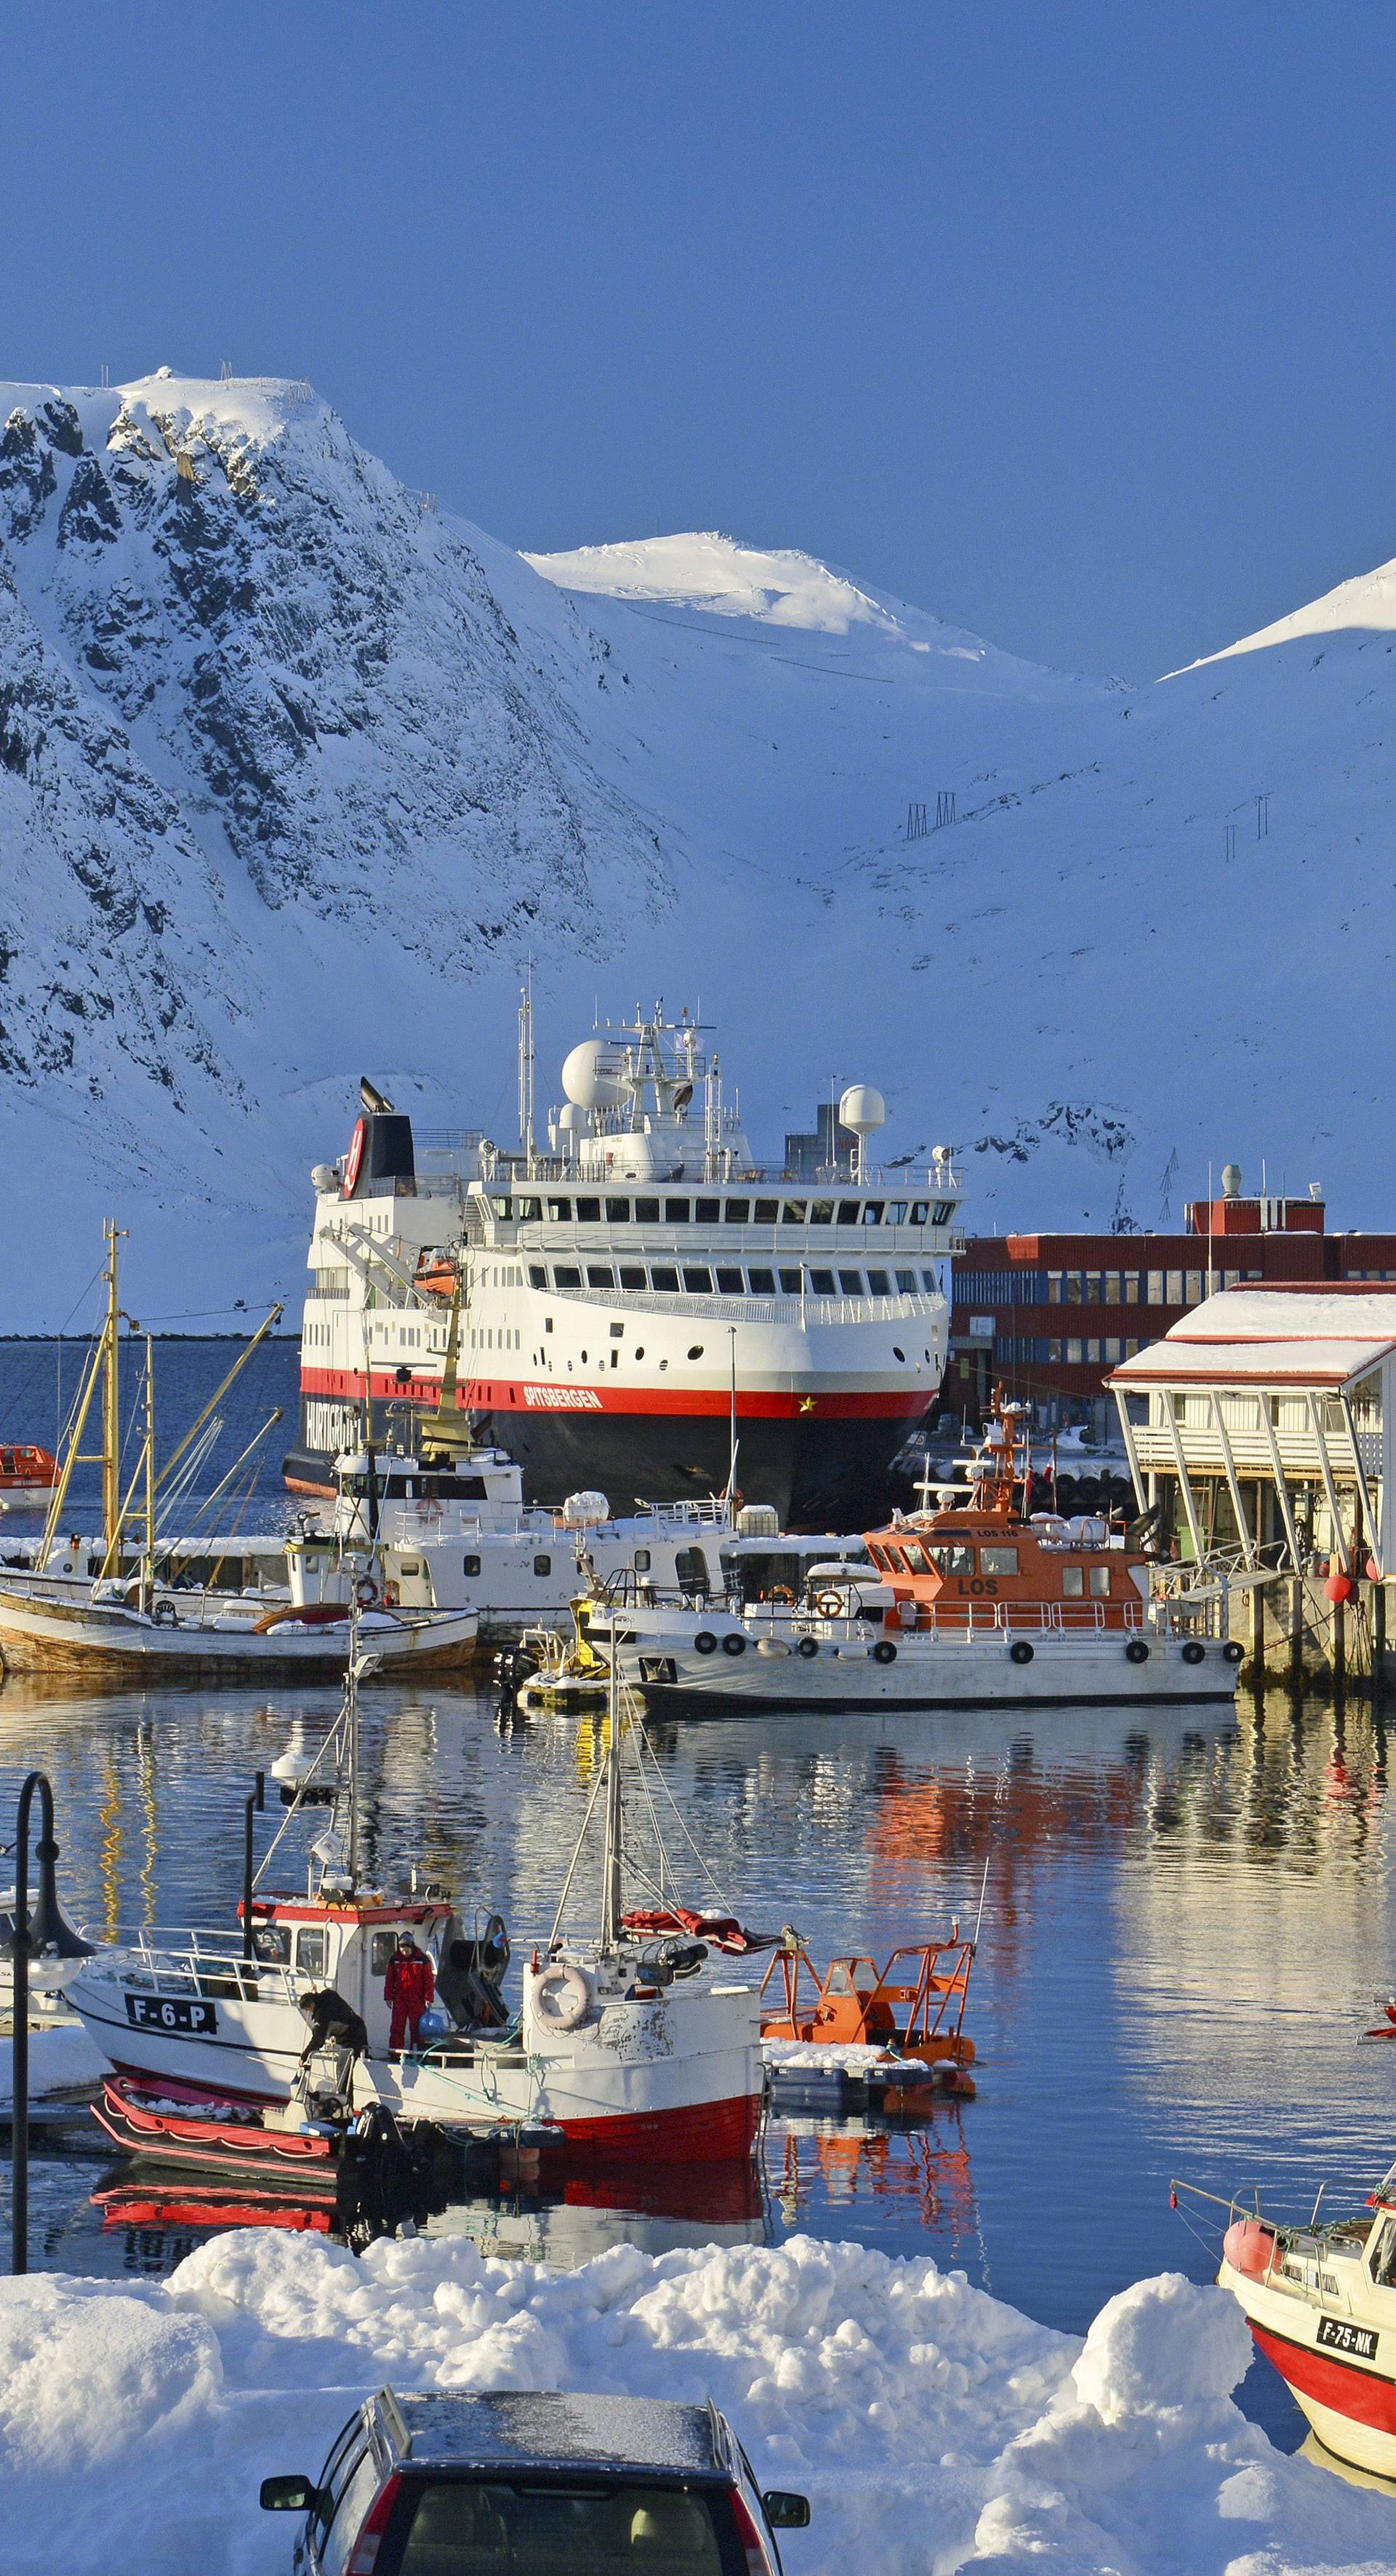 Harbour surrounded by snowcapped mountains, Norway